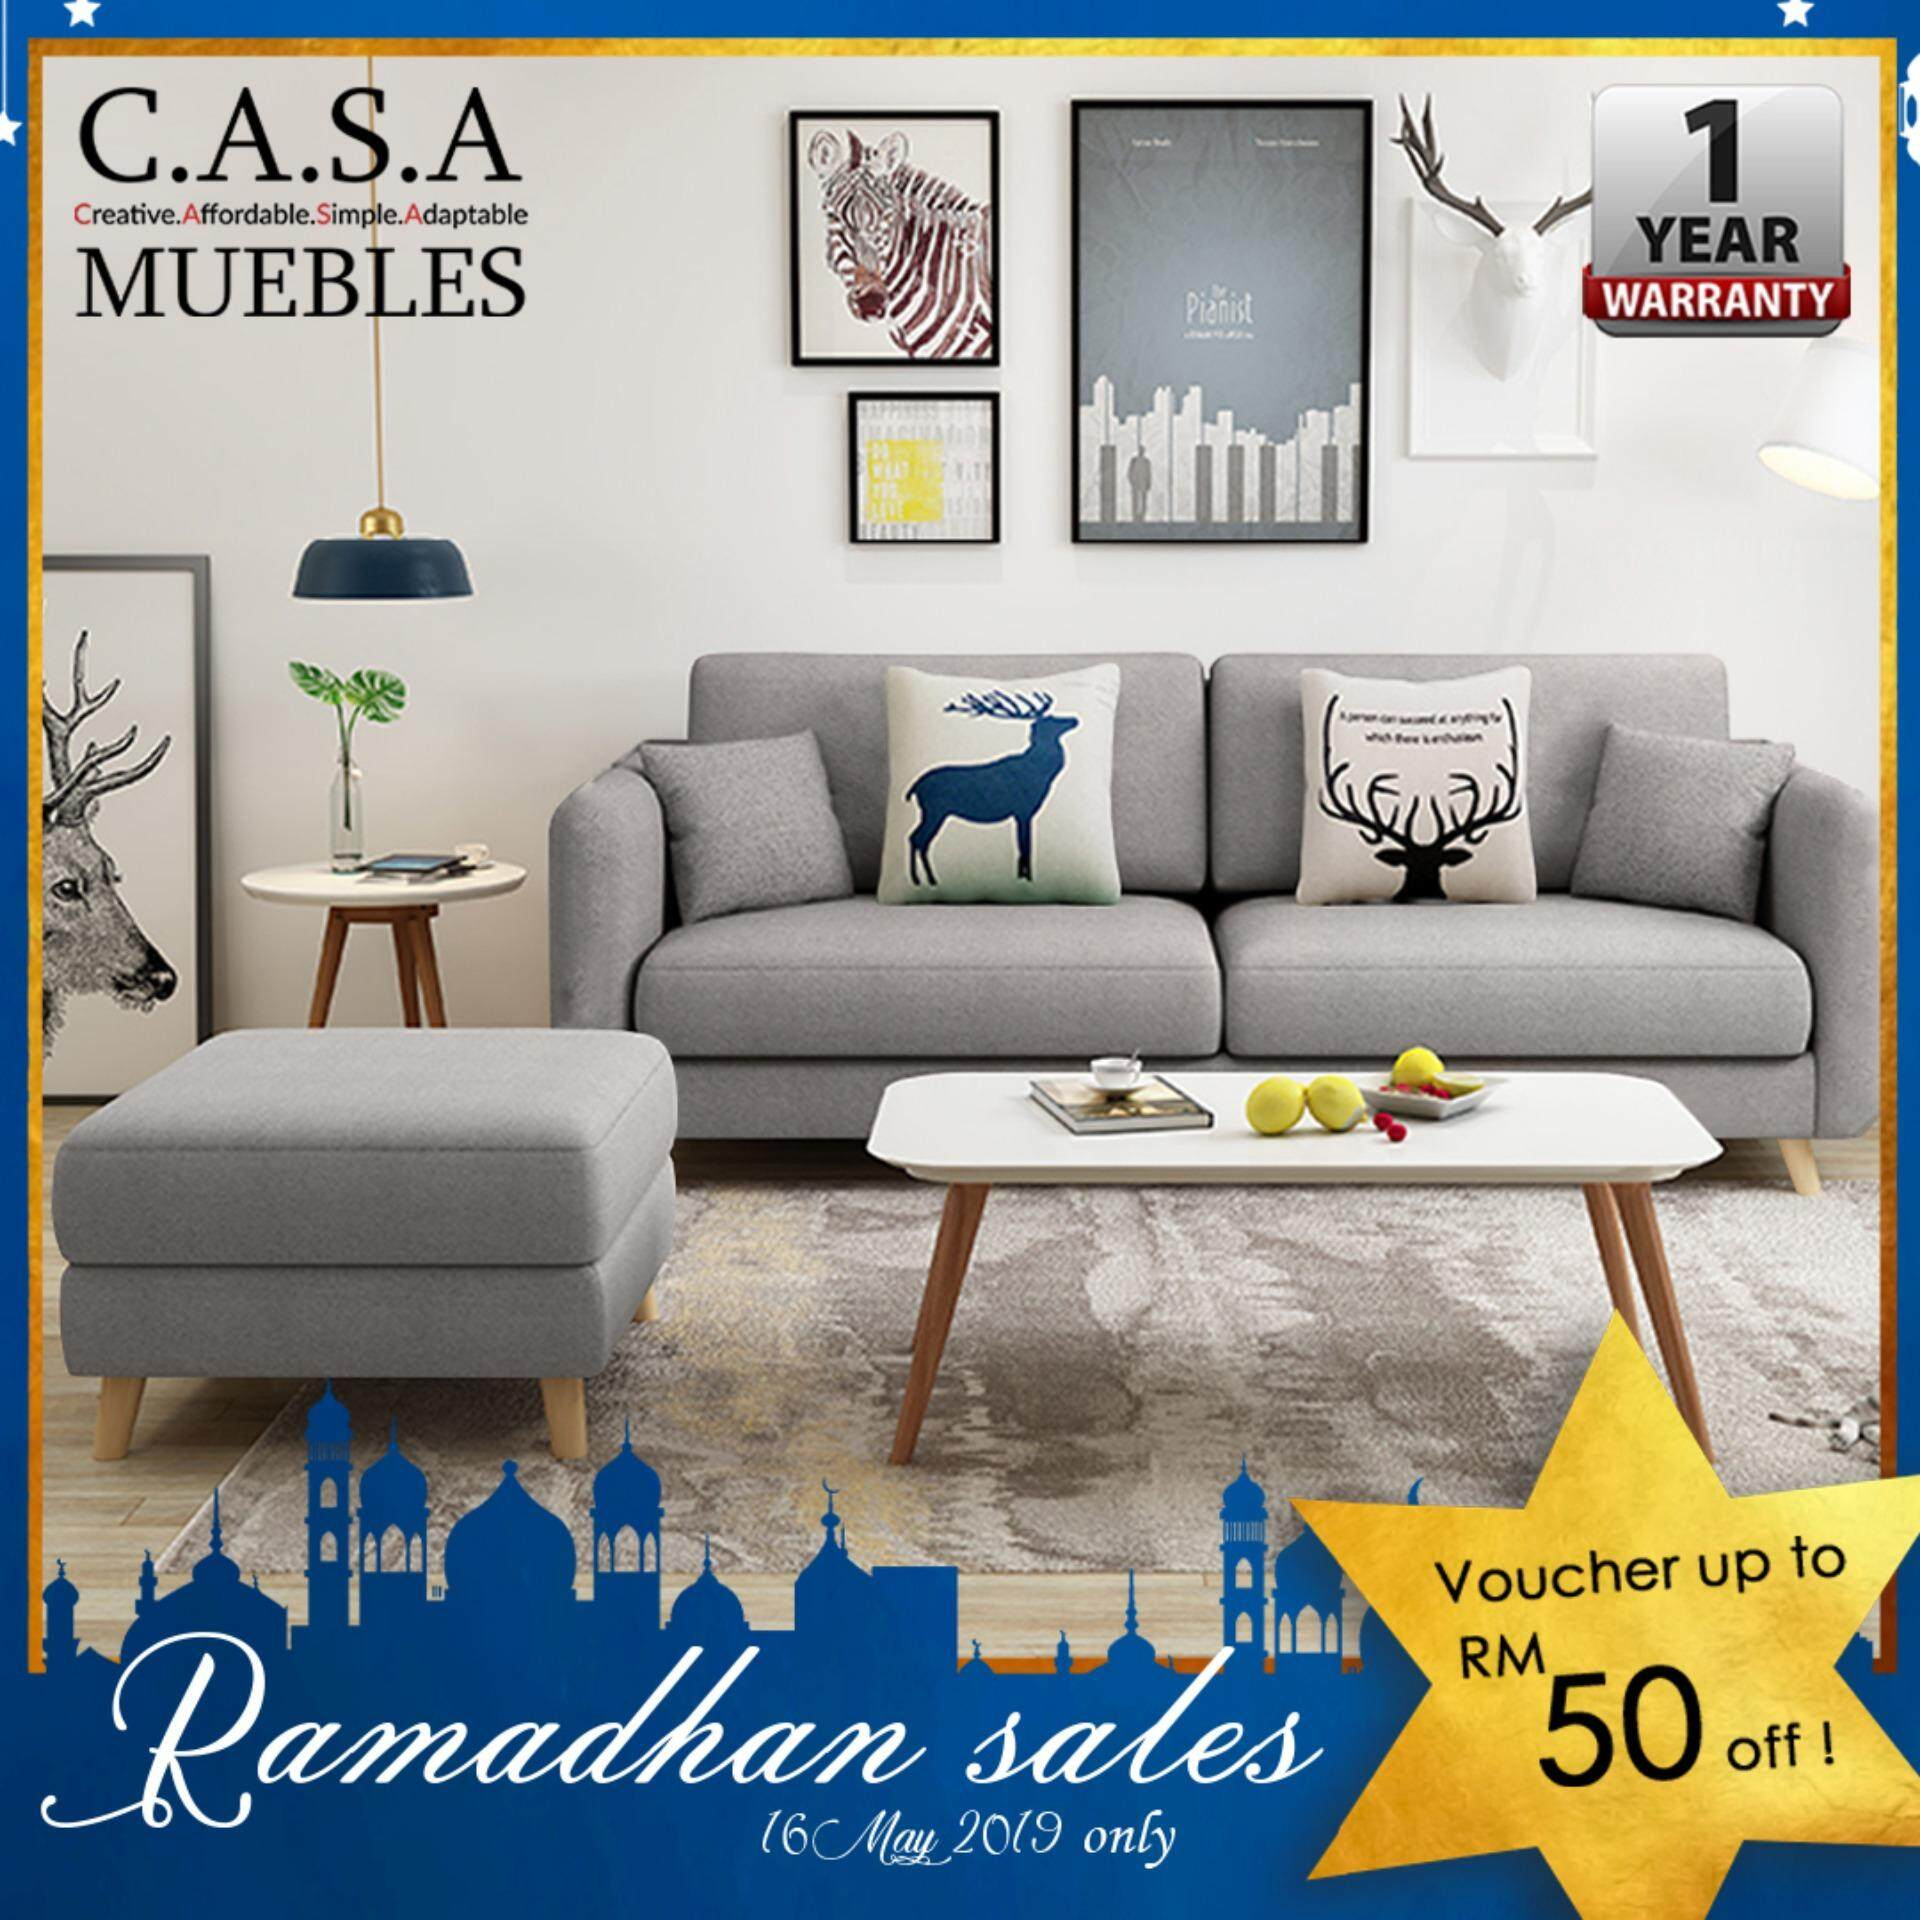 Only Muebles Casa Muebles Roosevelt 2 Seater Sofa With Coffee Table